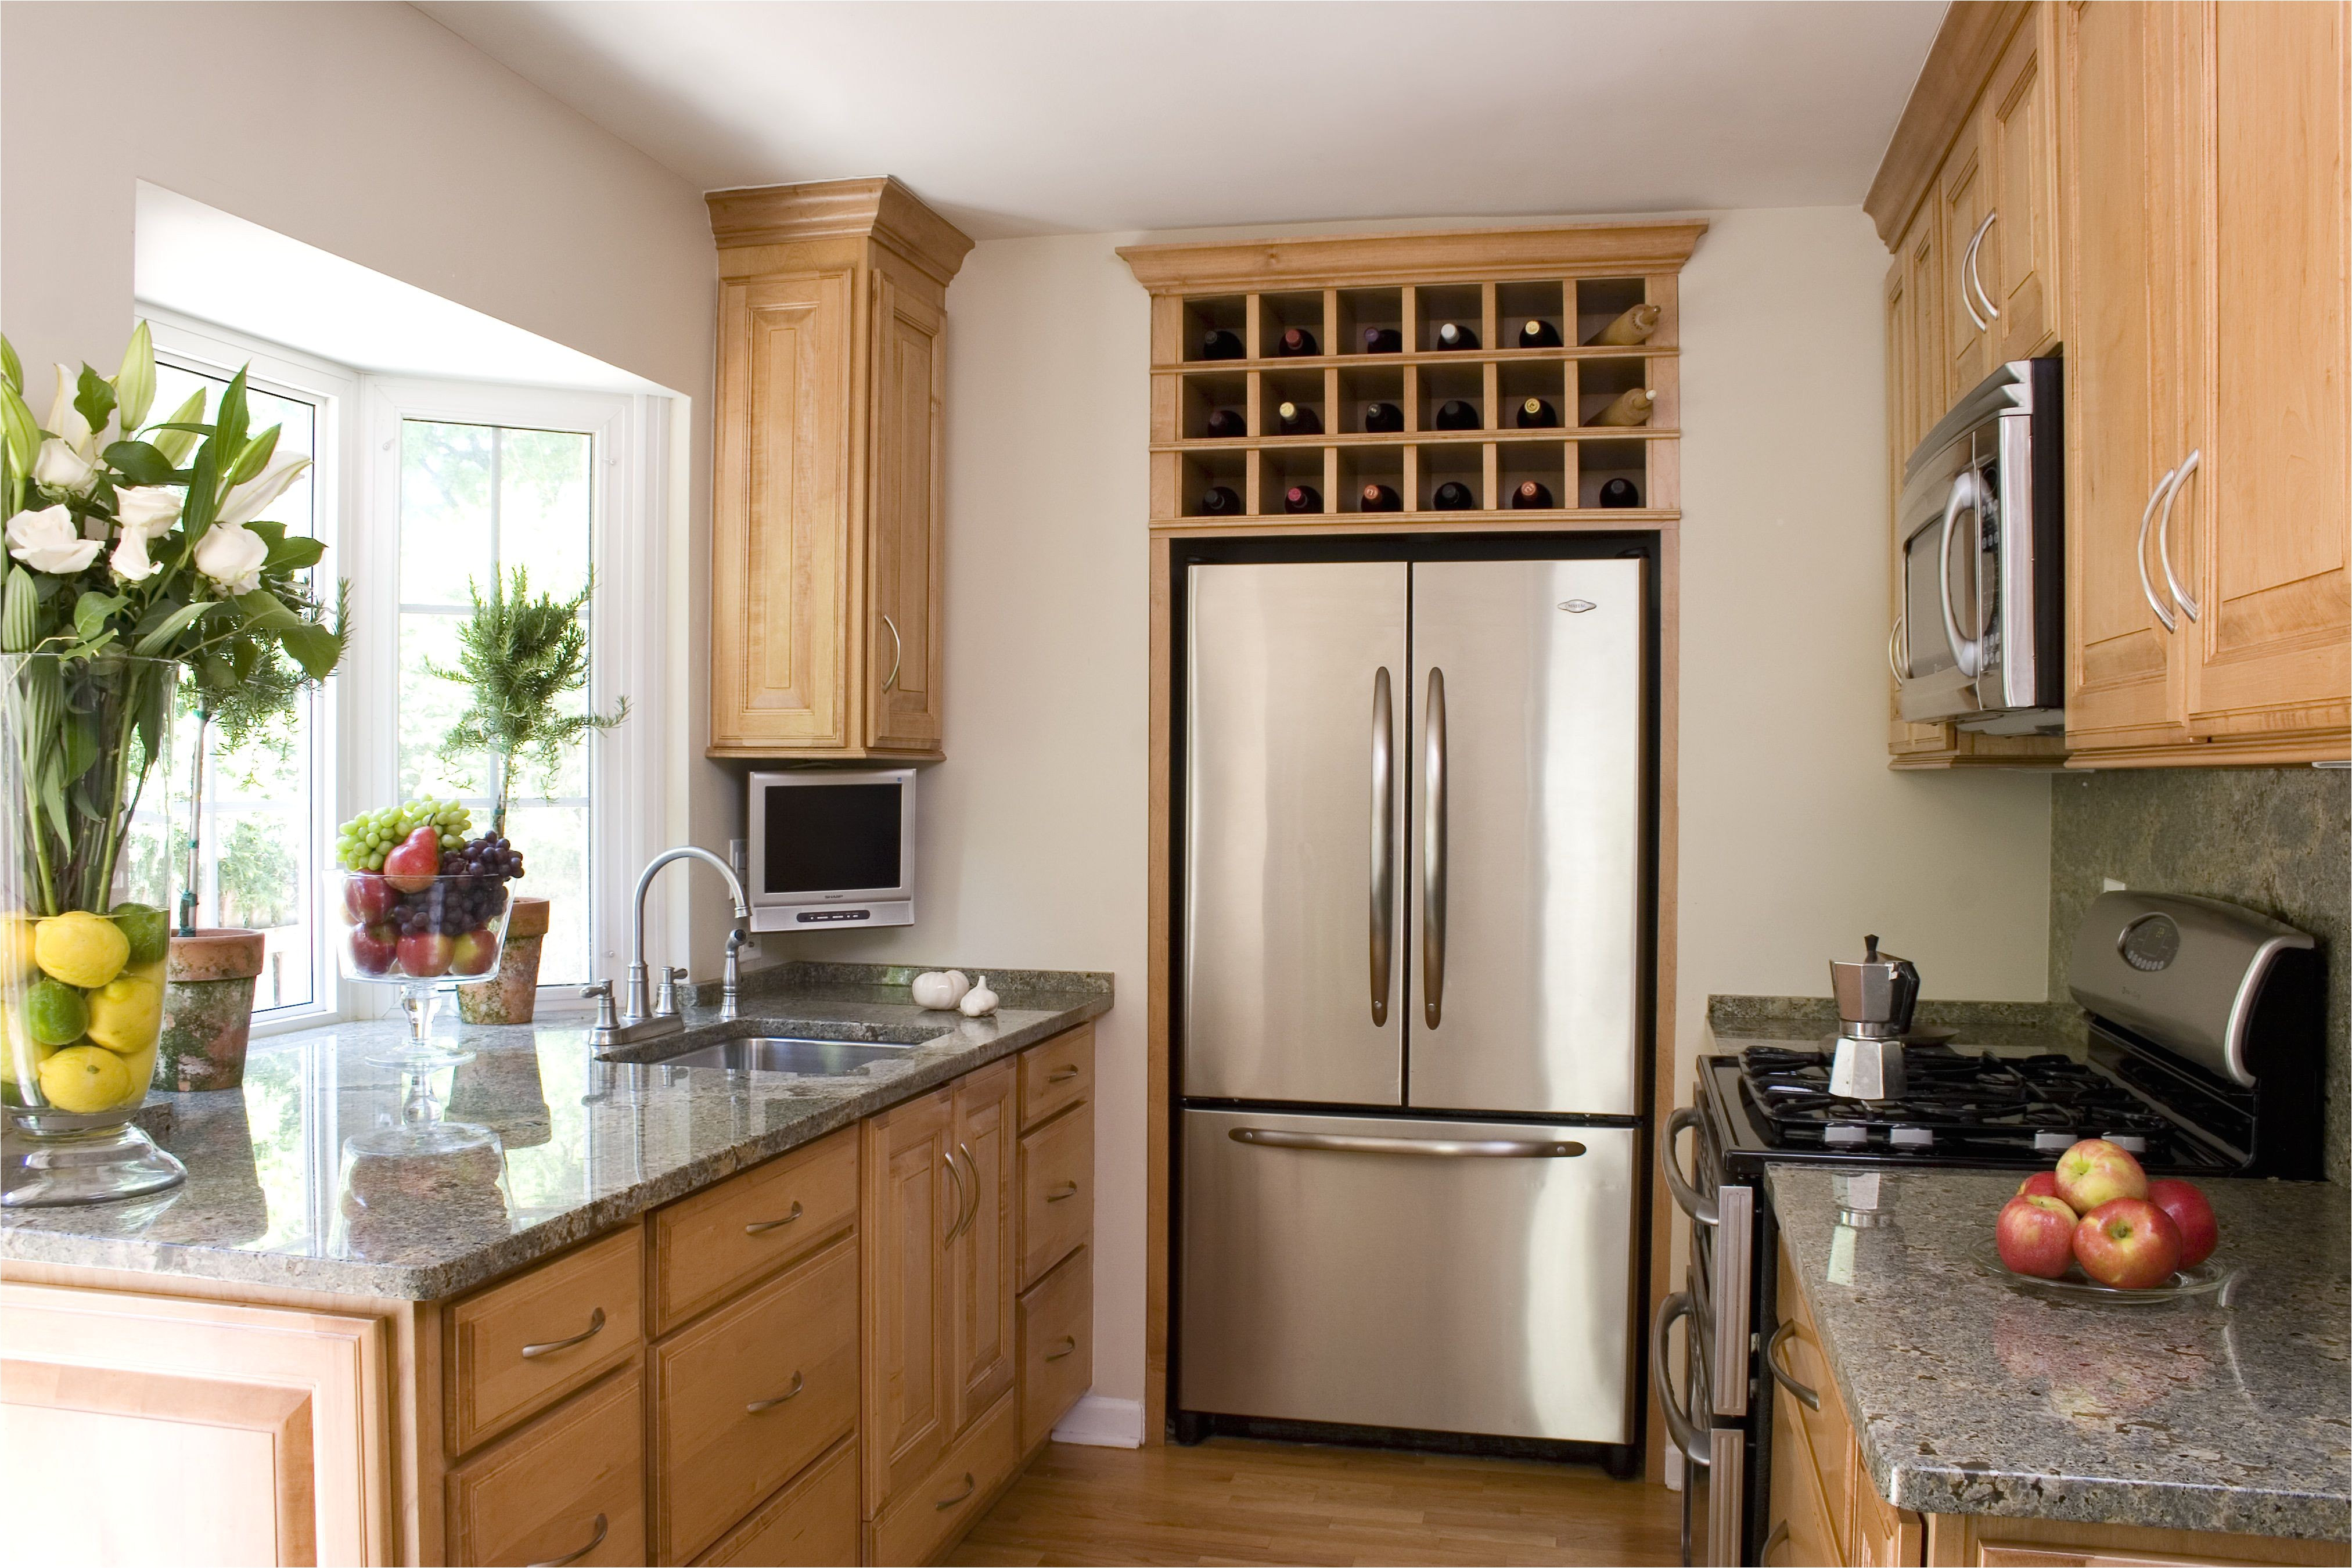 stylish and functional small kitchen ideas 3017287